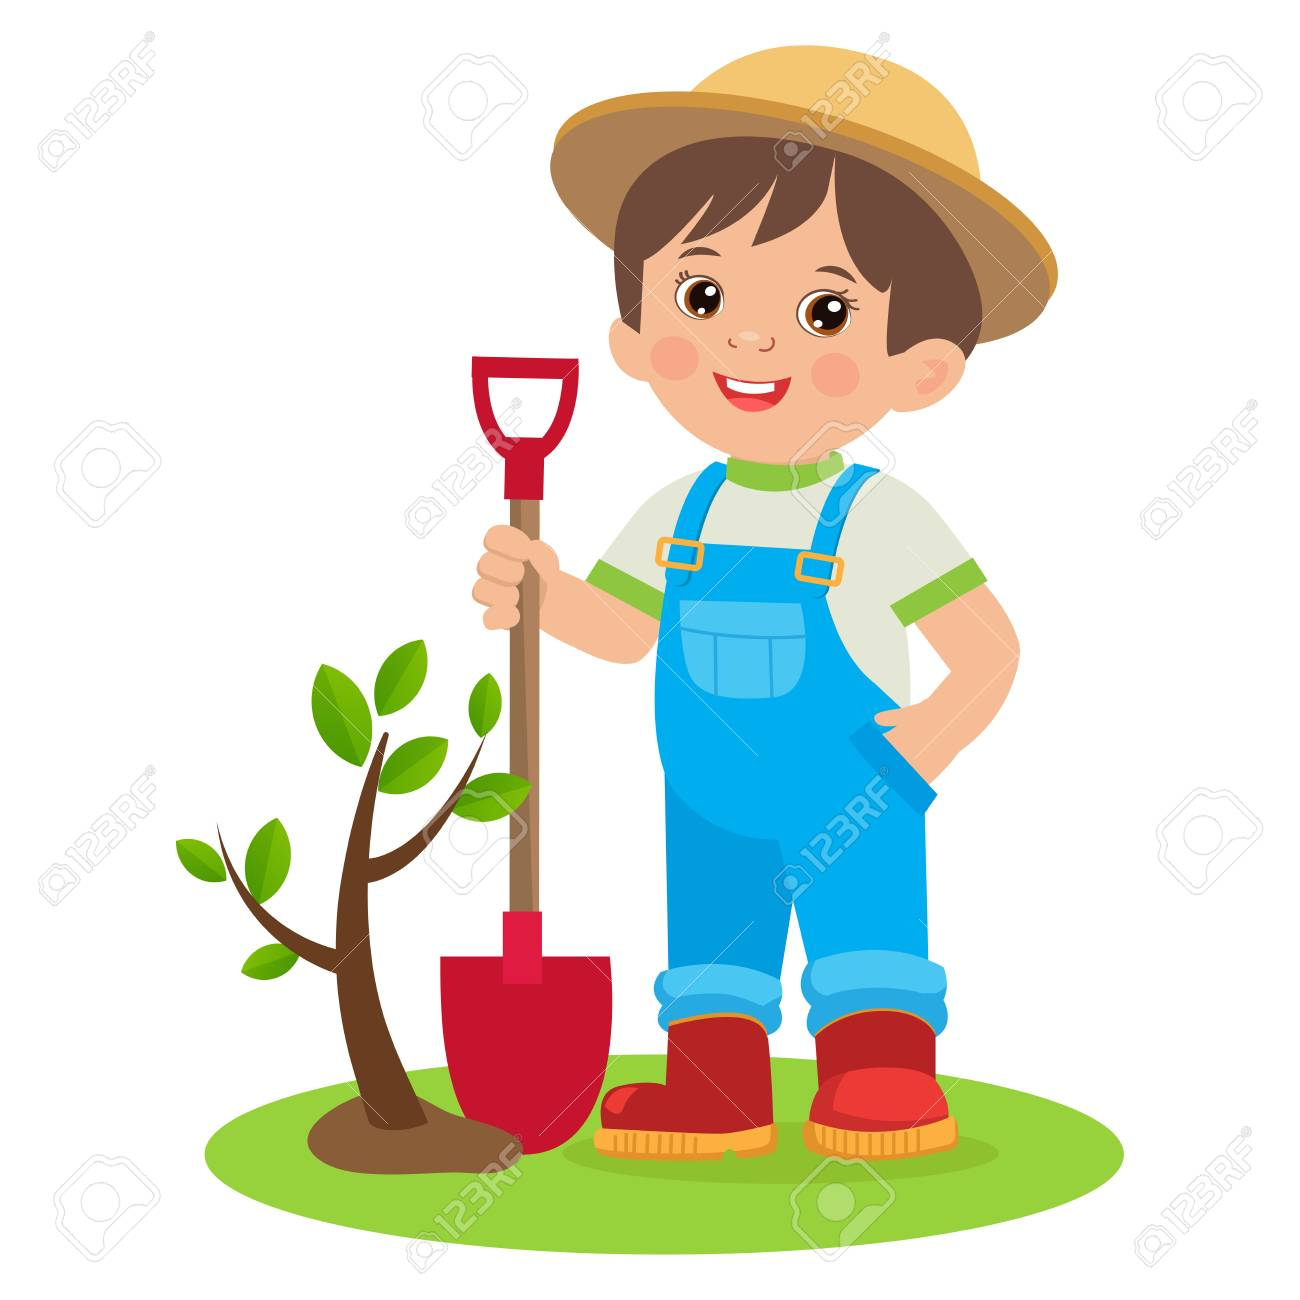 Spring Gardening Growing Young Gardener Cute Cartoon Boy With Royalty Free Cliparts Vectors And Stock Illustration Image 100068829